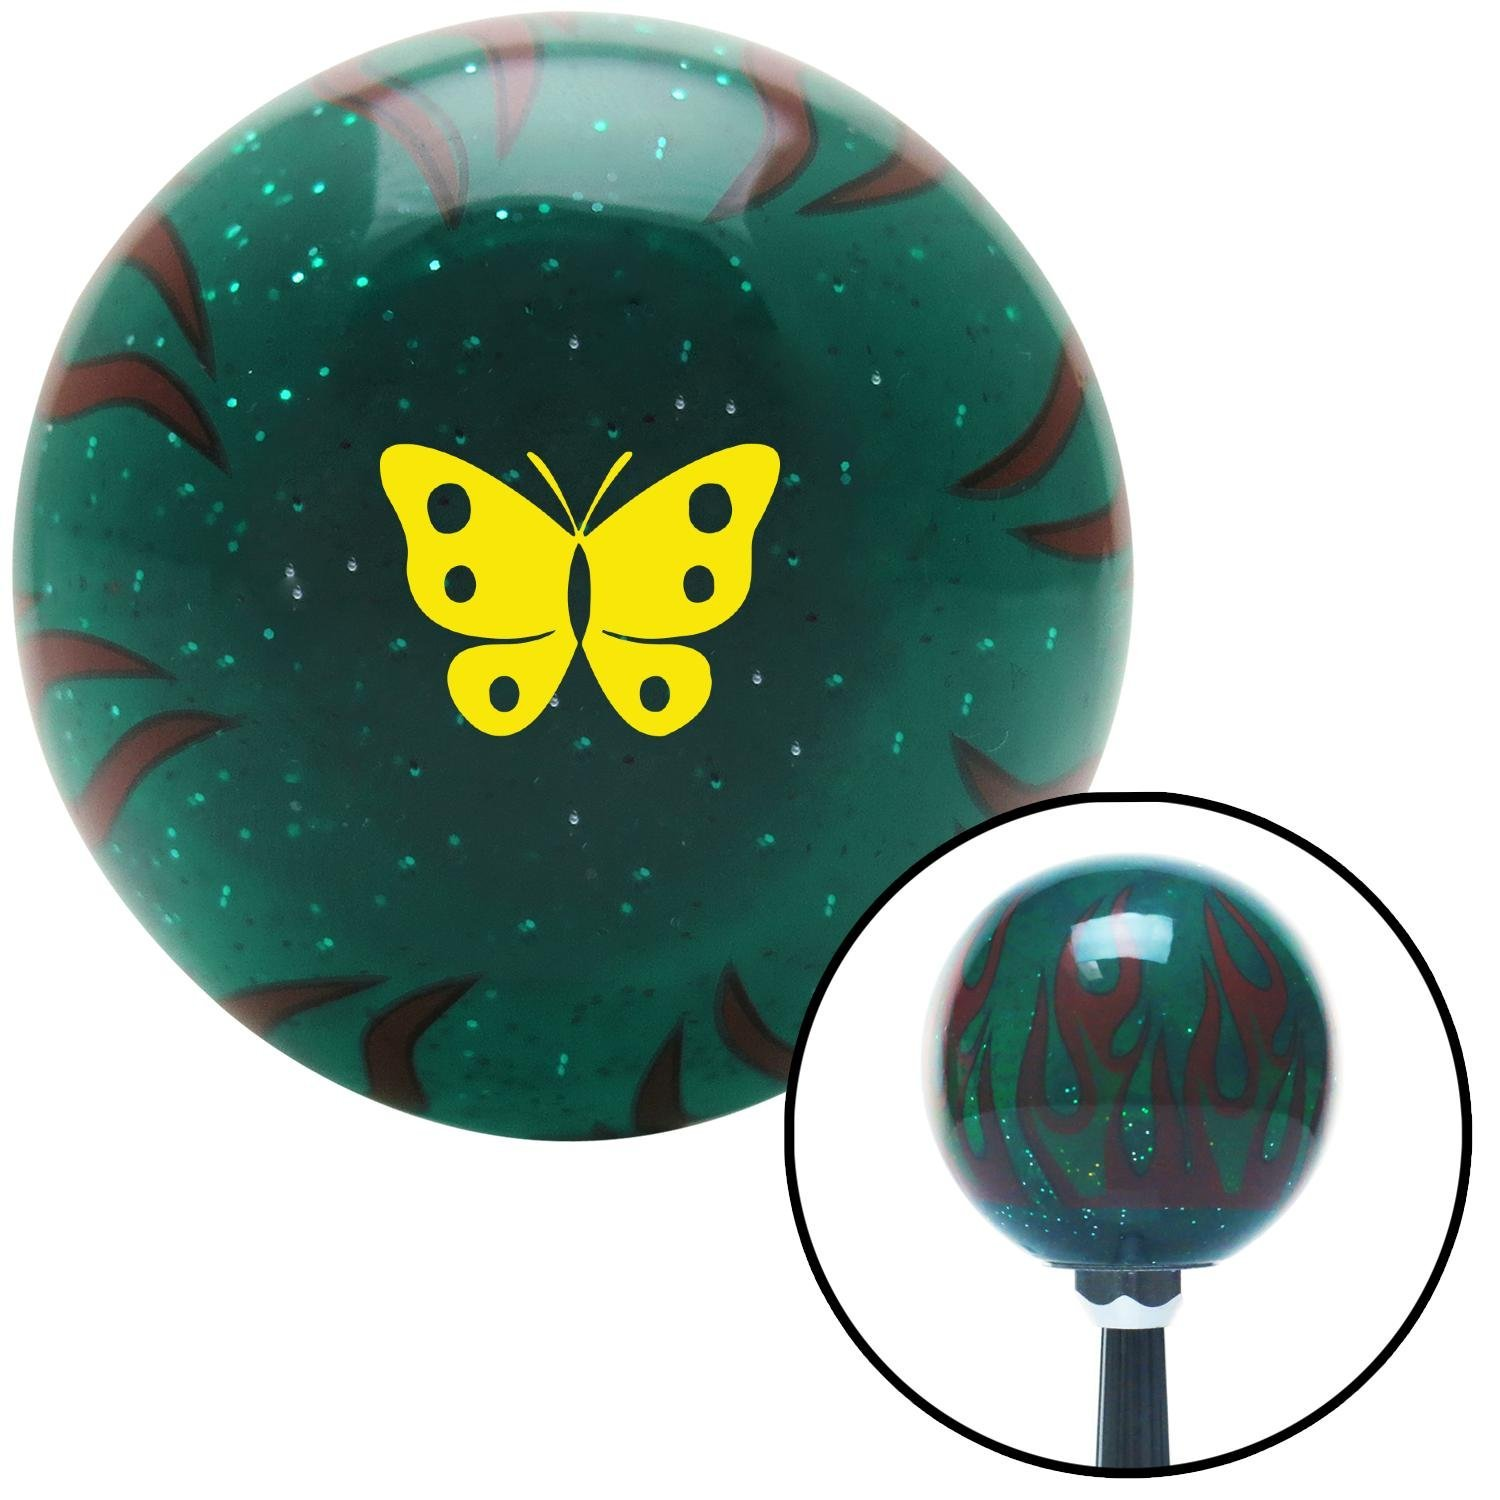 American Shifter 299858 Shift Knob Yellow Classic Butterfly Green Flame Metal Flake with M16 x 1.5 Insert